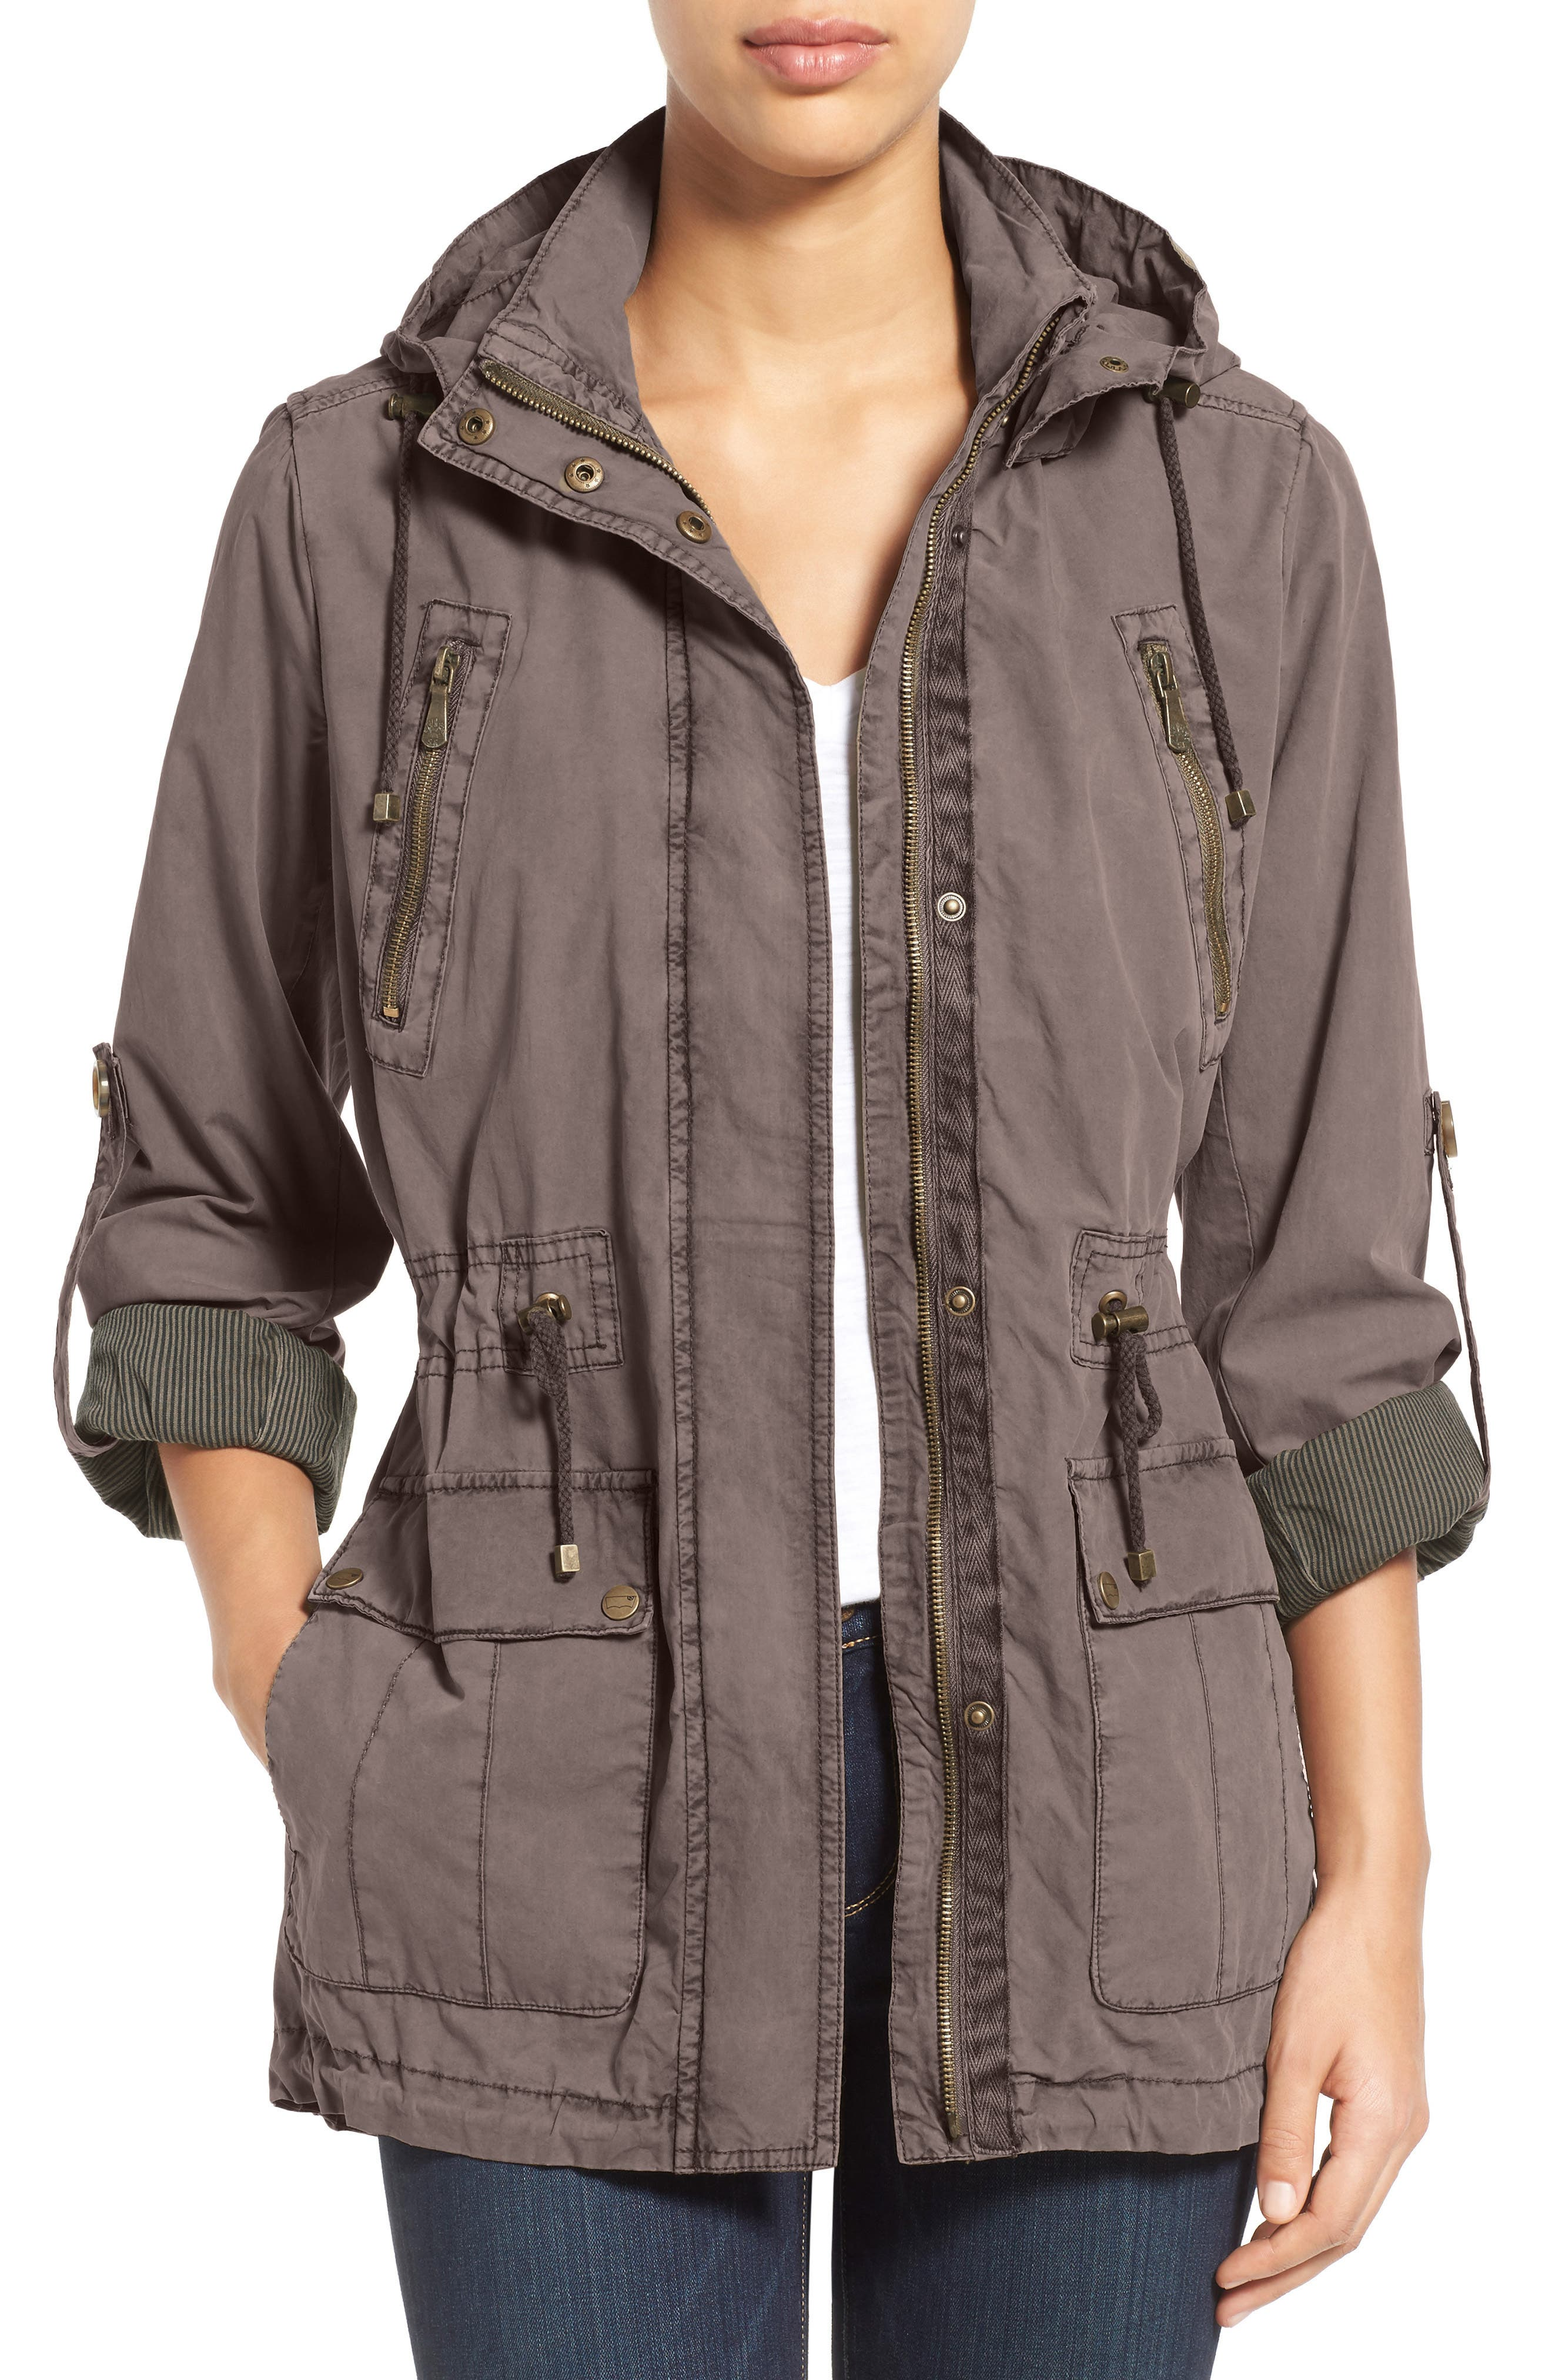 Parachute Hooded Cotton Utility Jacket,                             Alternate thumbnail 3, color,                             GREY